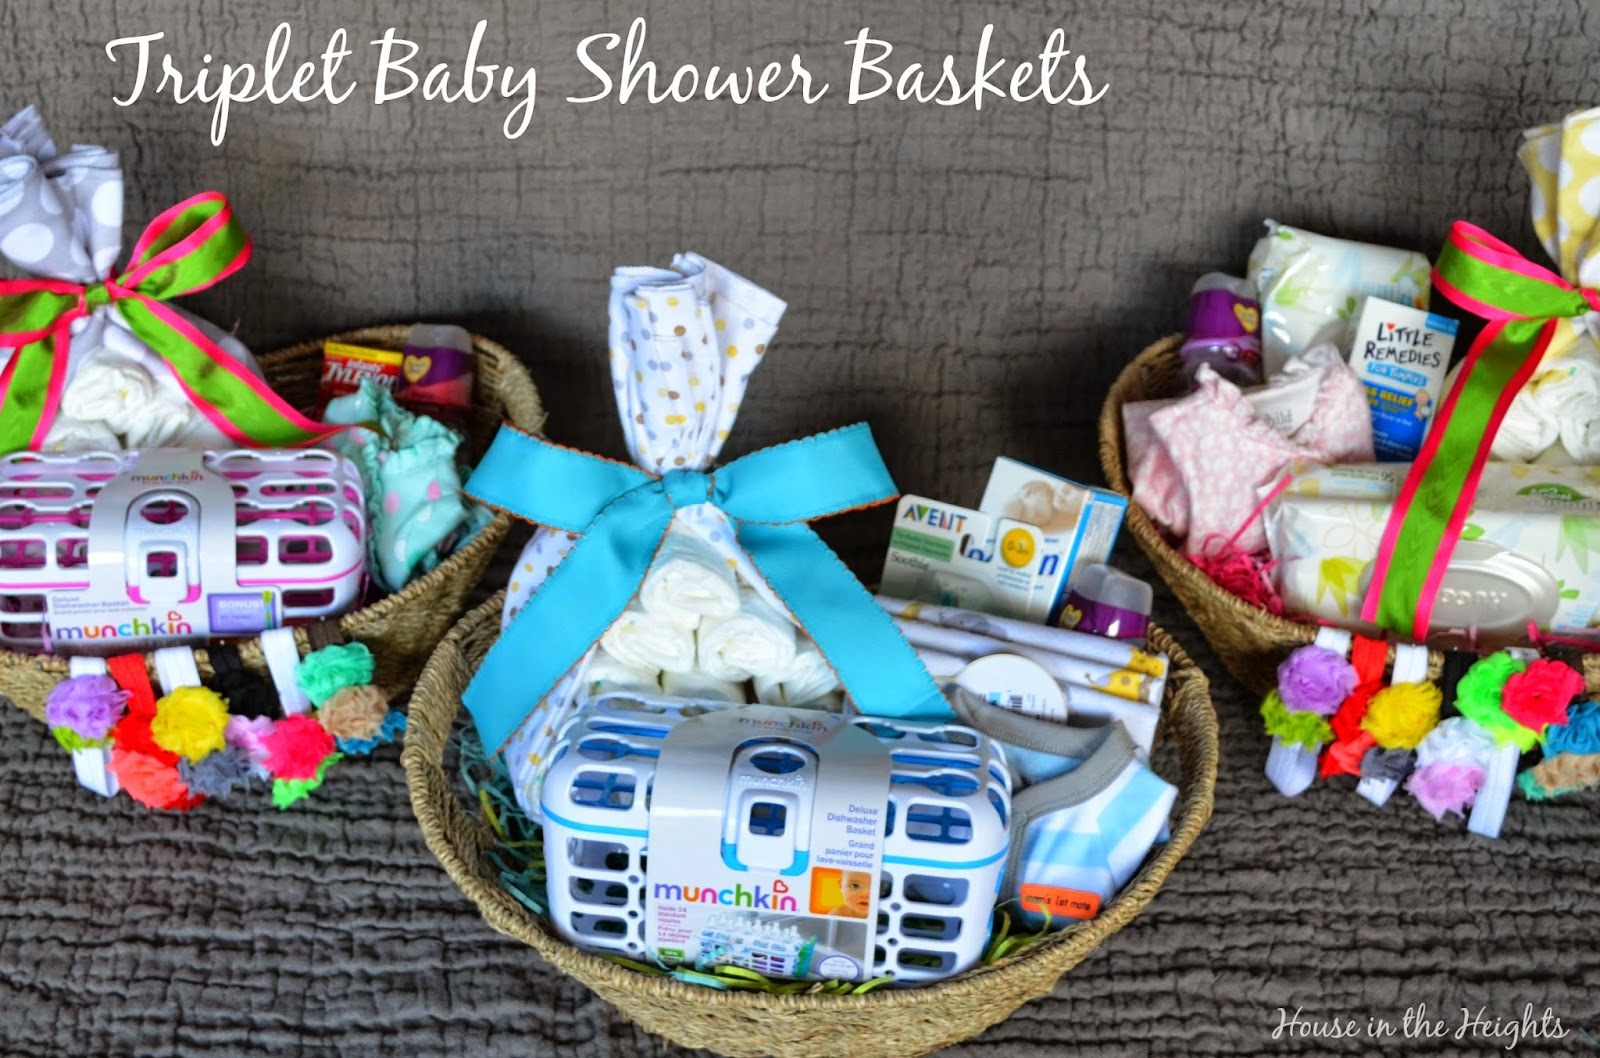 House in the Heights: Baby Shower Baskets